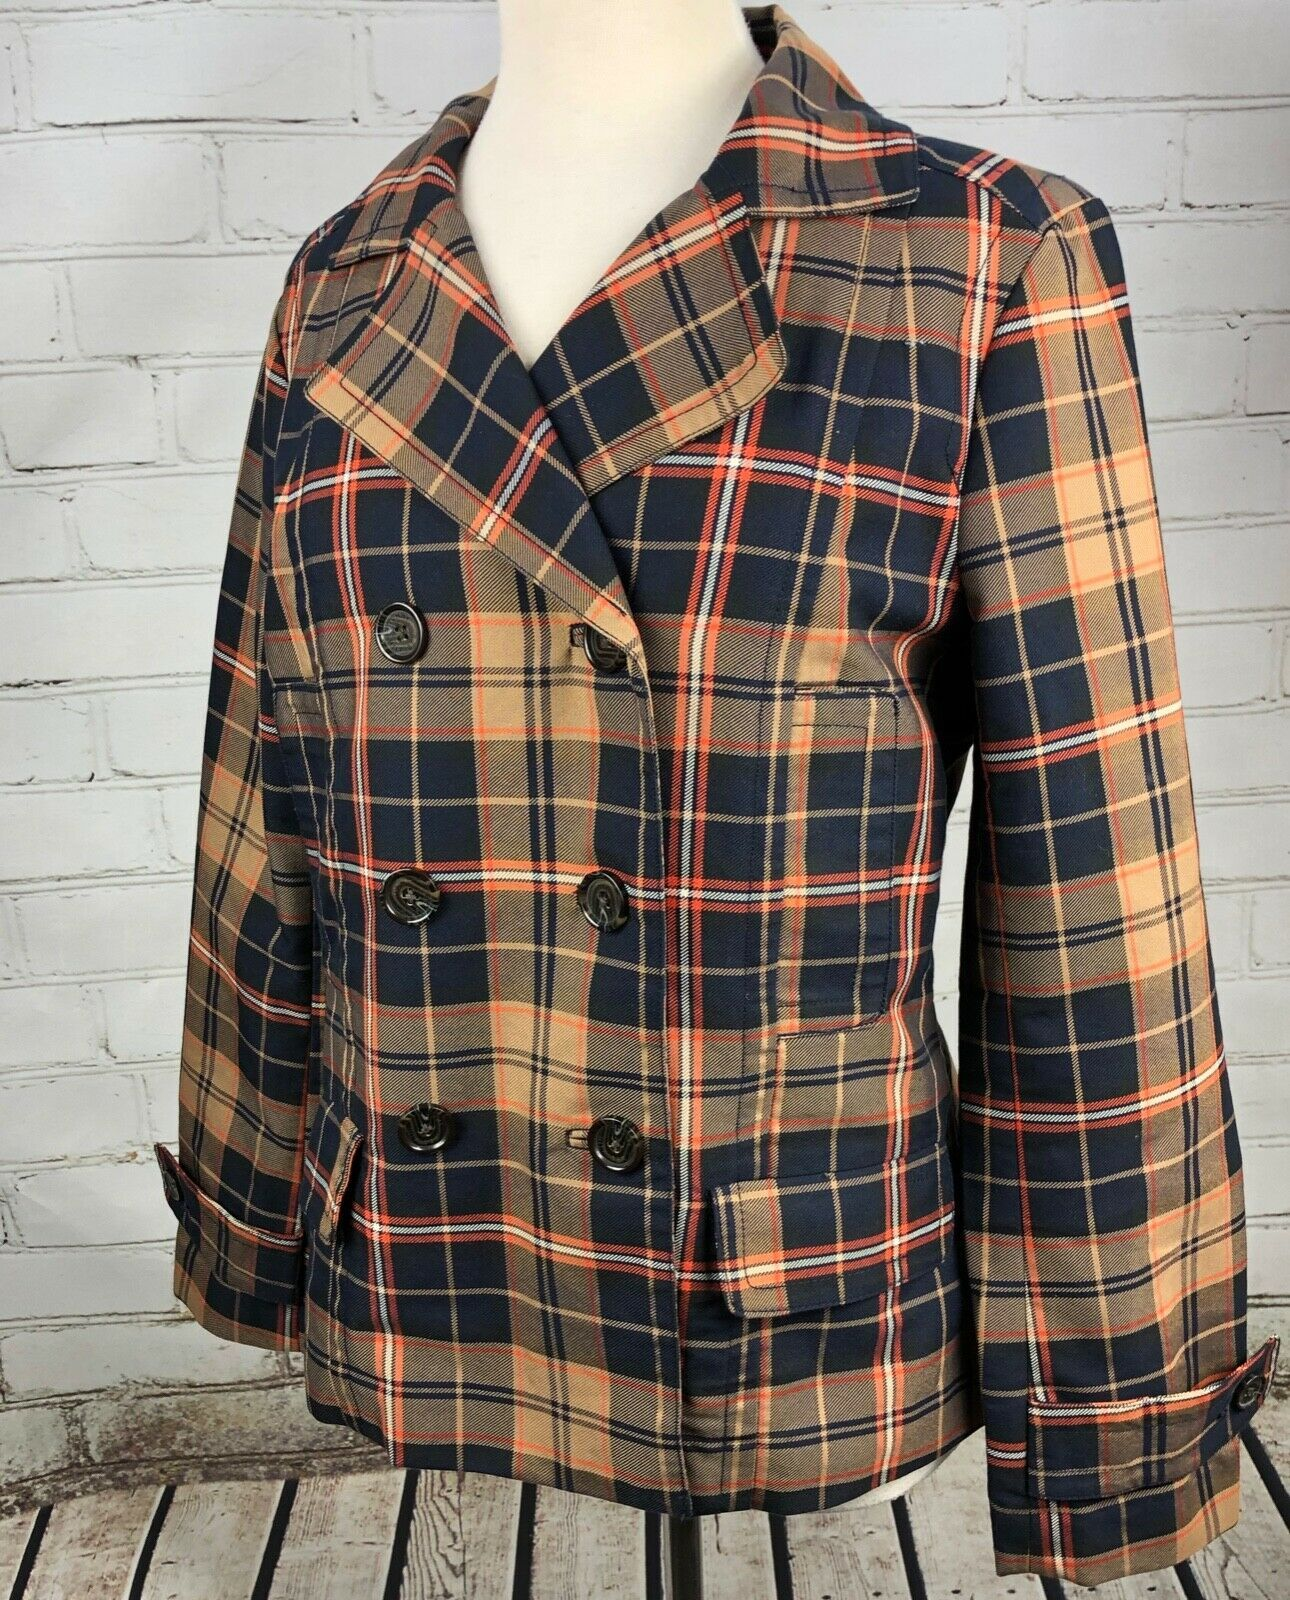 Tommy Hilfiger Jacket Plaid Lightweight Pea Coat Trench Fall Plaid Cotton Size M